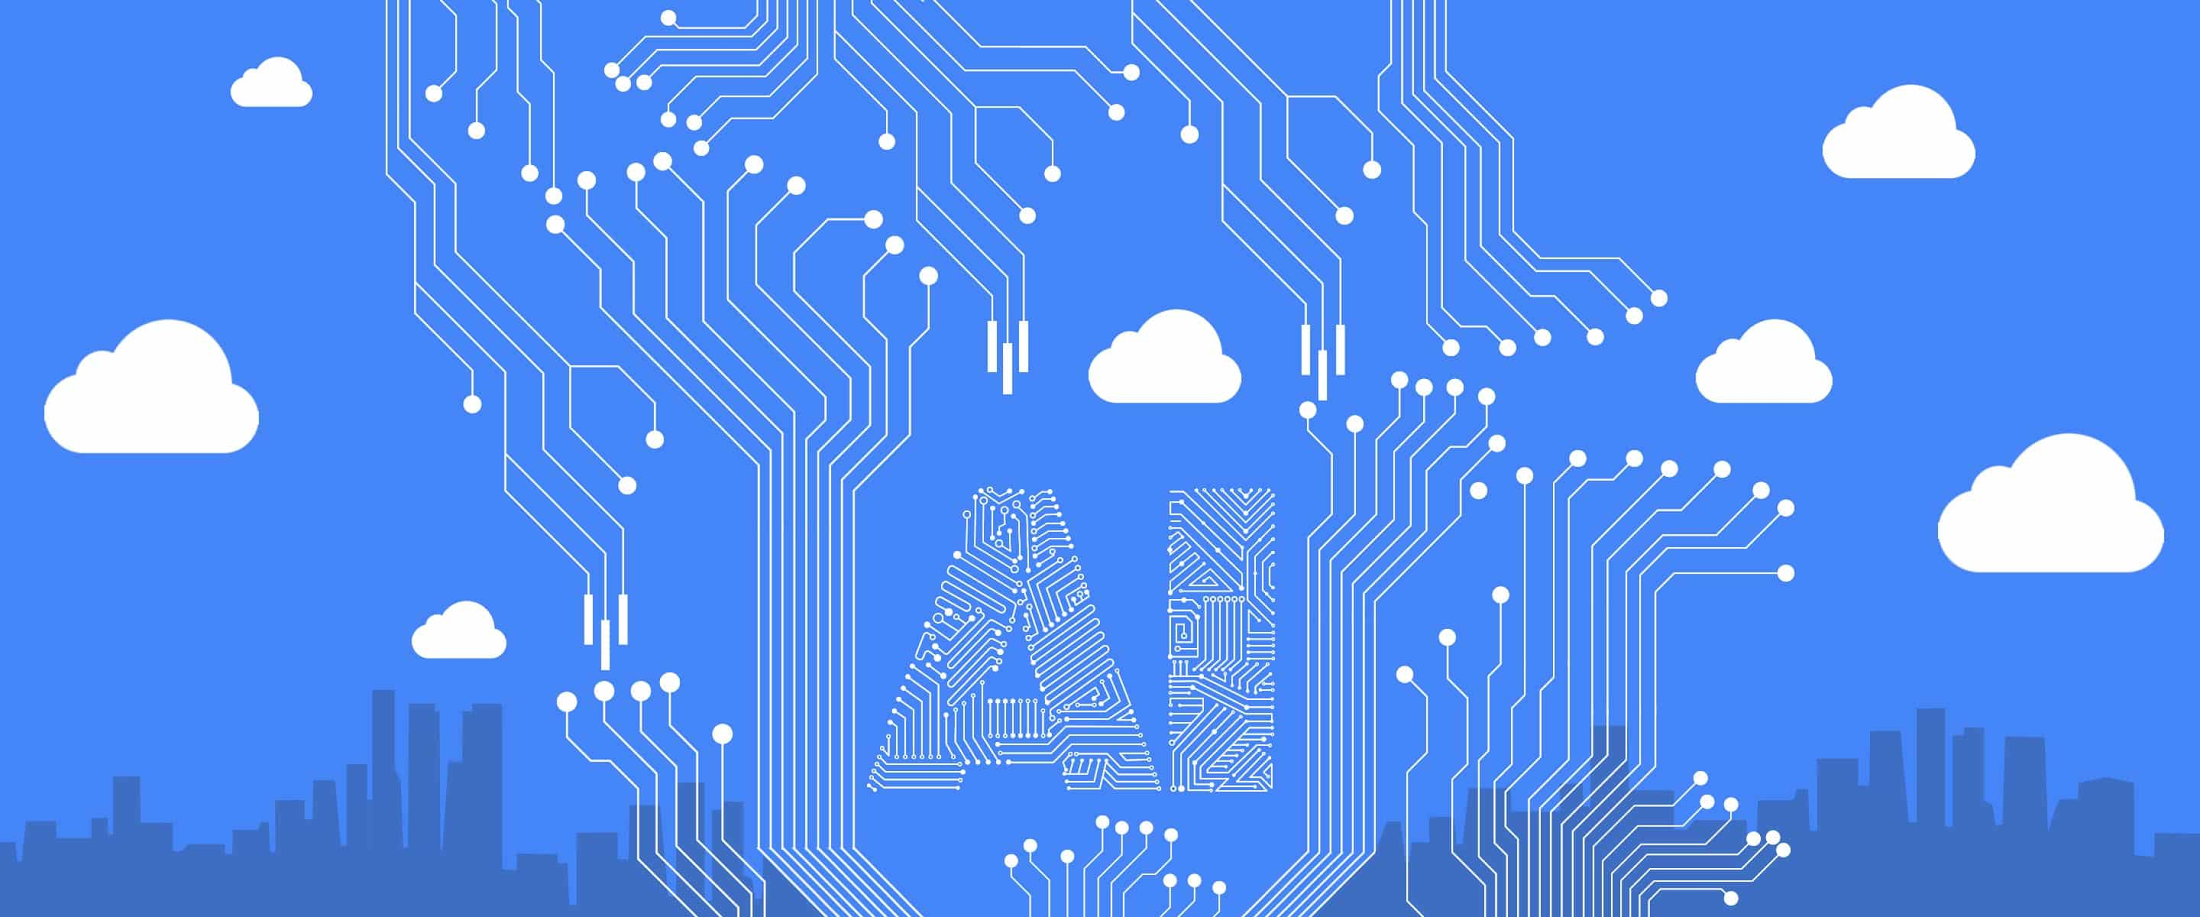 Taking care of business with Responsible AI